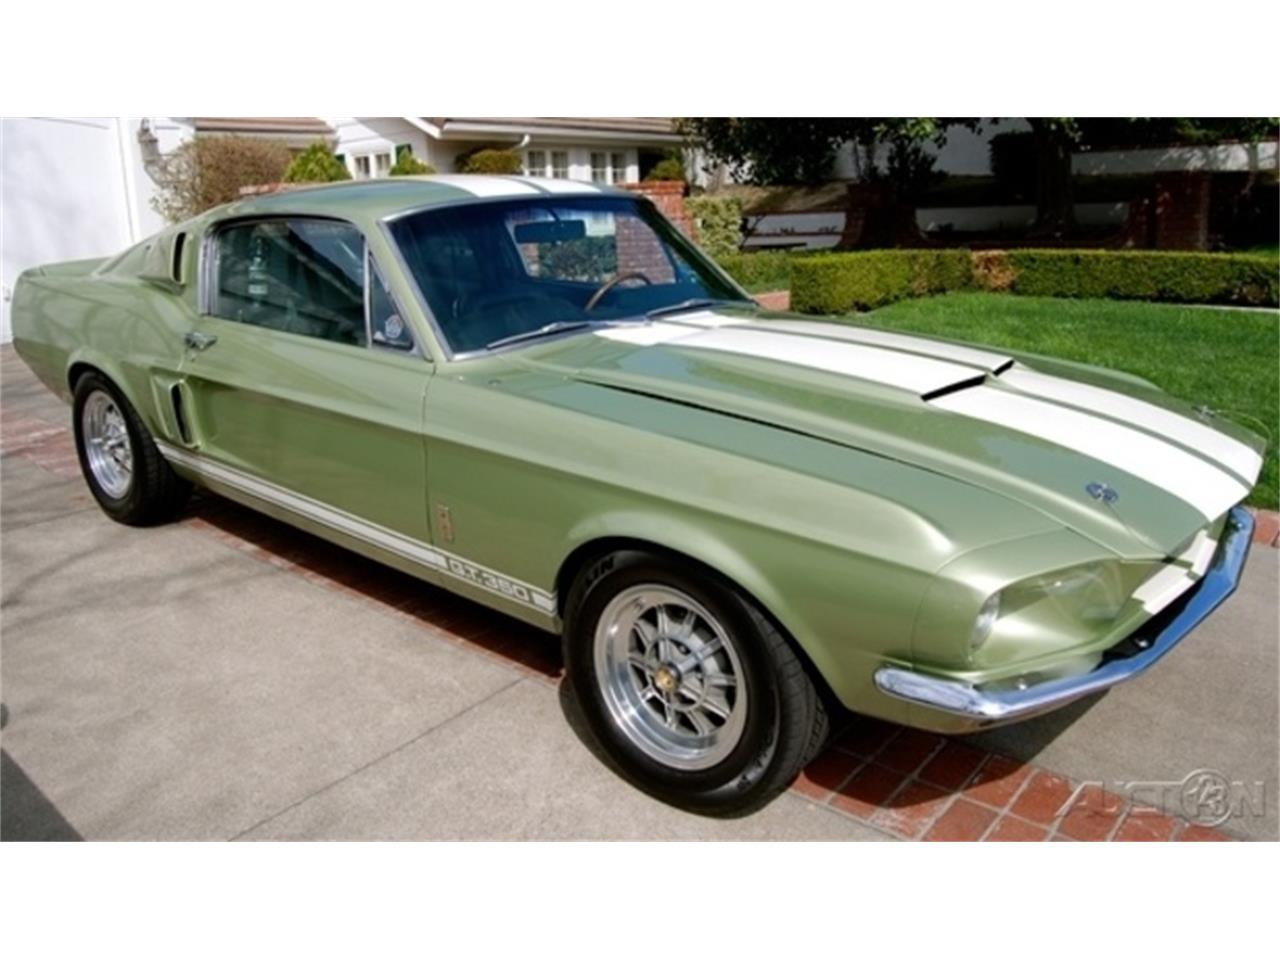 Large picture of 67 mustang gt350 kina